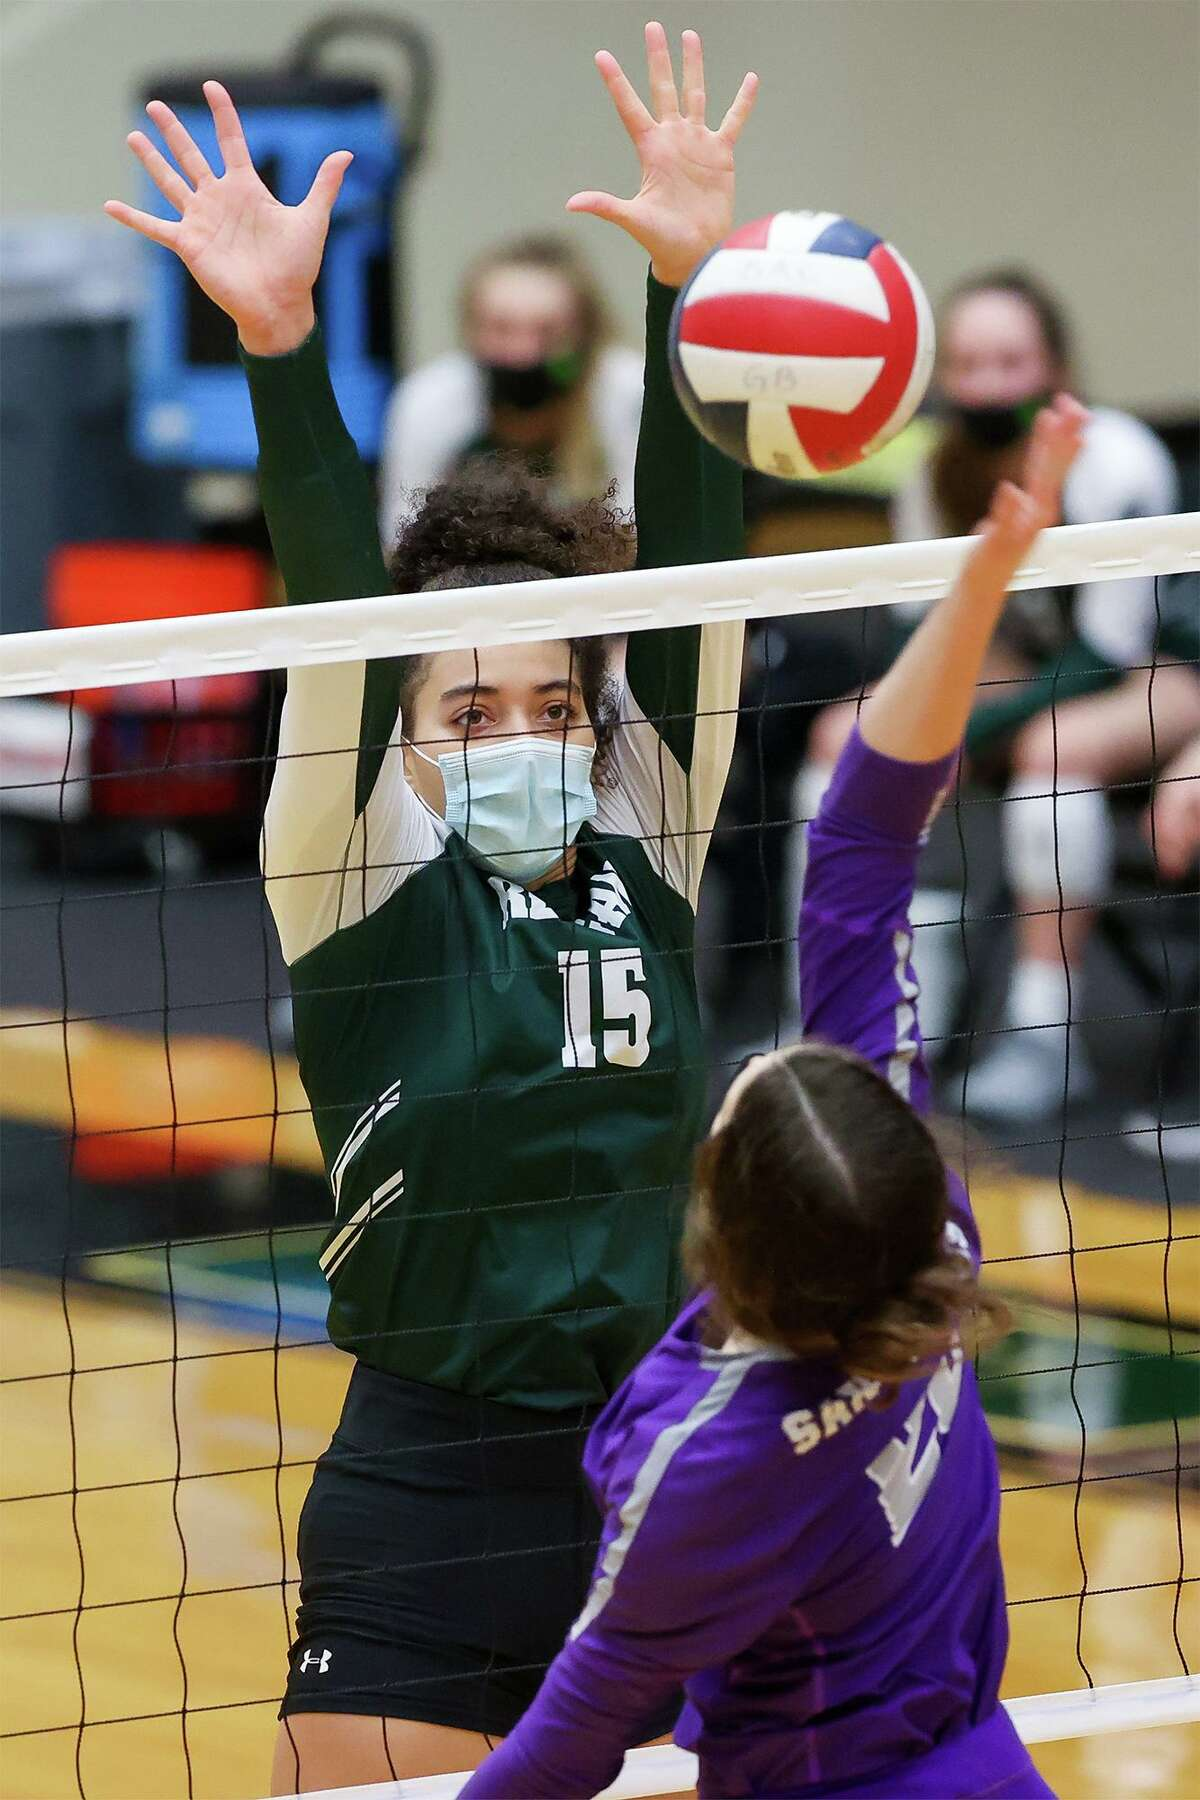 Reagan's Nyah Anderson looks to block a shot by San Marcos' Samantha Booth during their Class 6A volleyball second-round playoff match at Littleton Gym on Tuesday, Nov. 23, 2020. Reagan won the match in three sets: 25-20, 25-13, 25-12.